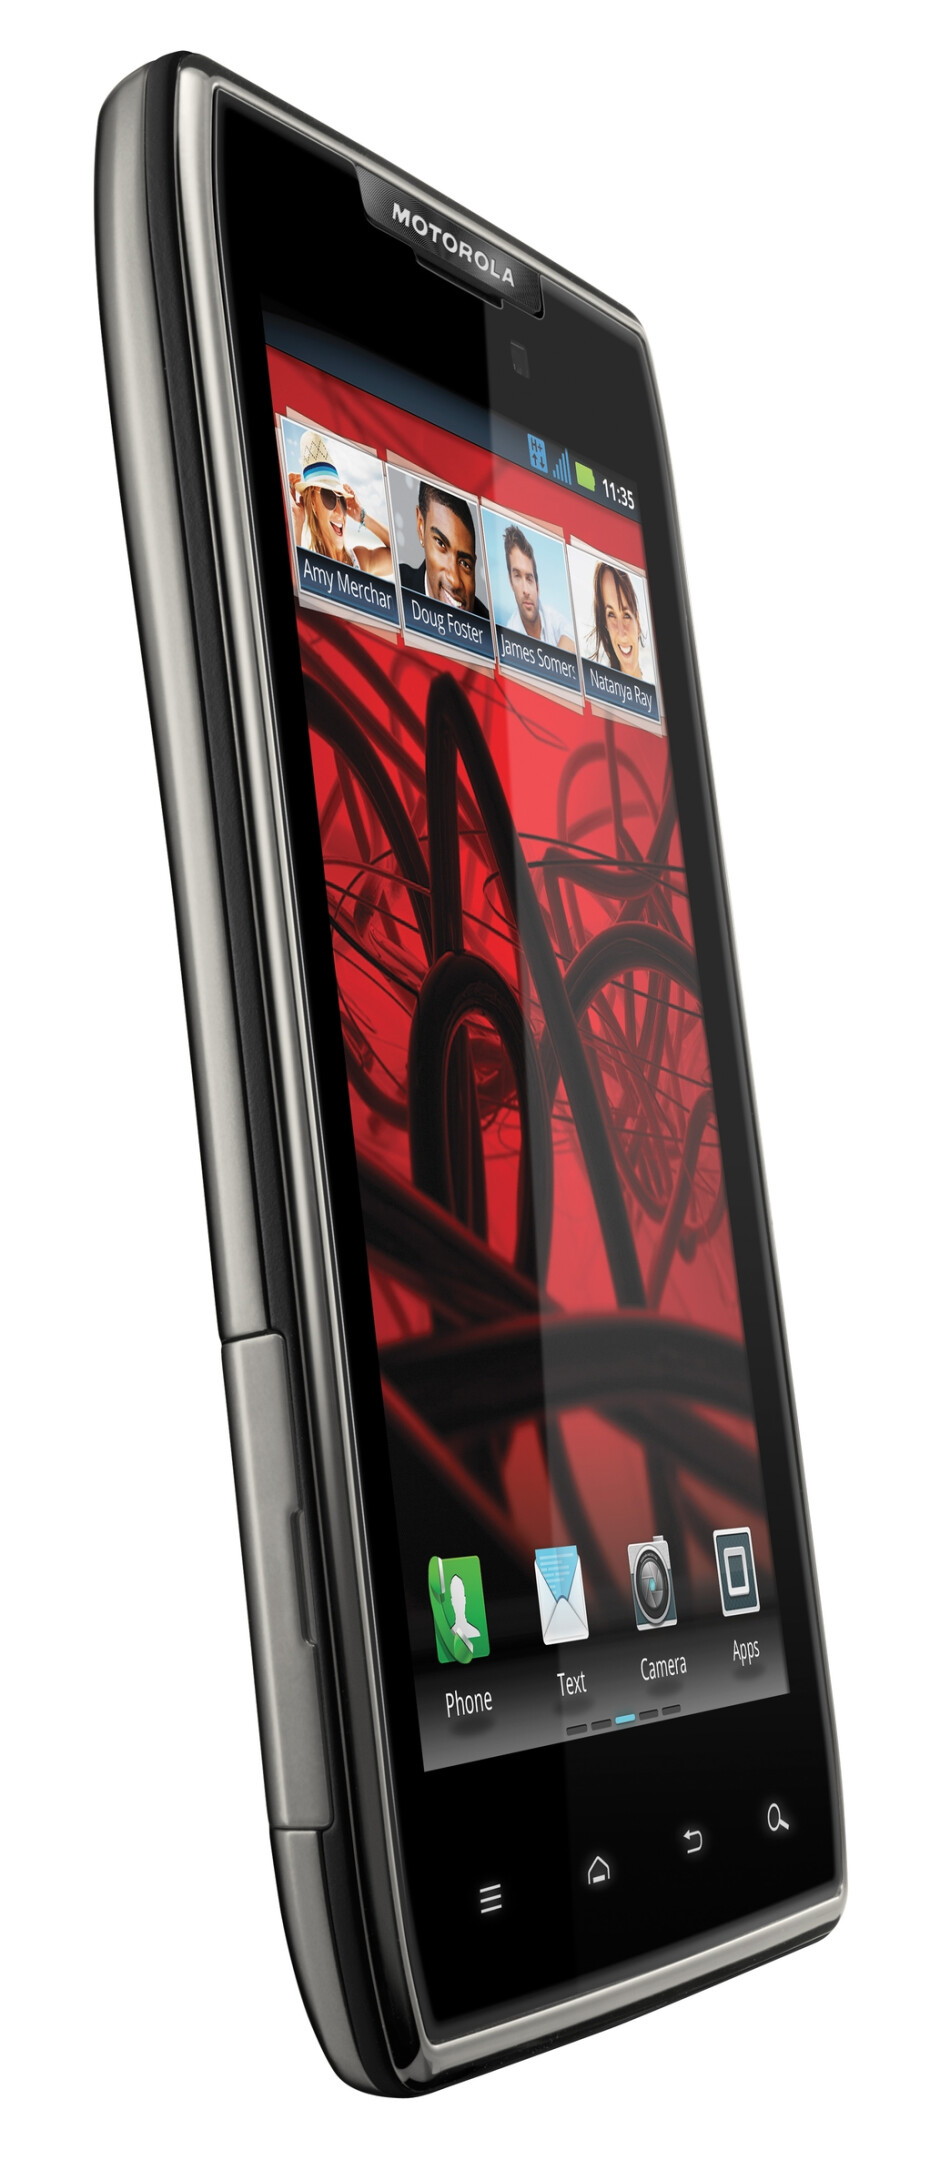 The Motorola RAZR MAXX is coming to Europe and the Middle East in May - Motorola RAZR MAXX officially coming to Europe and the Middle East